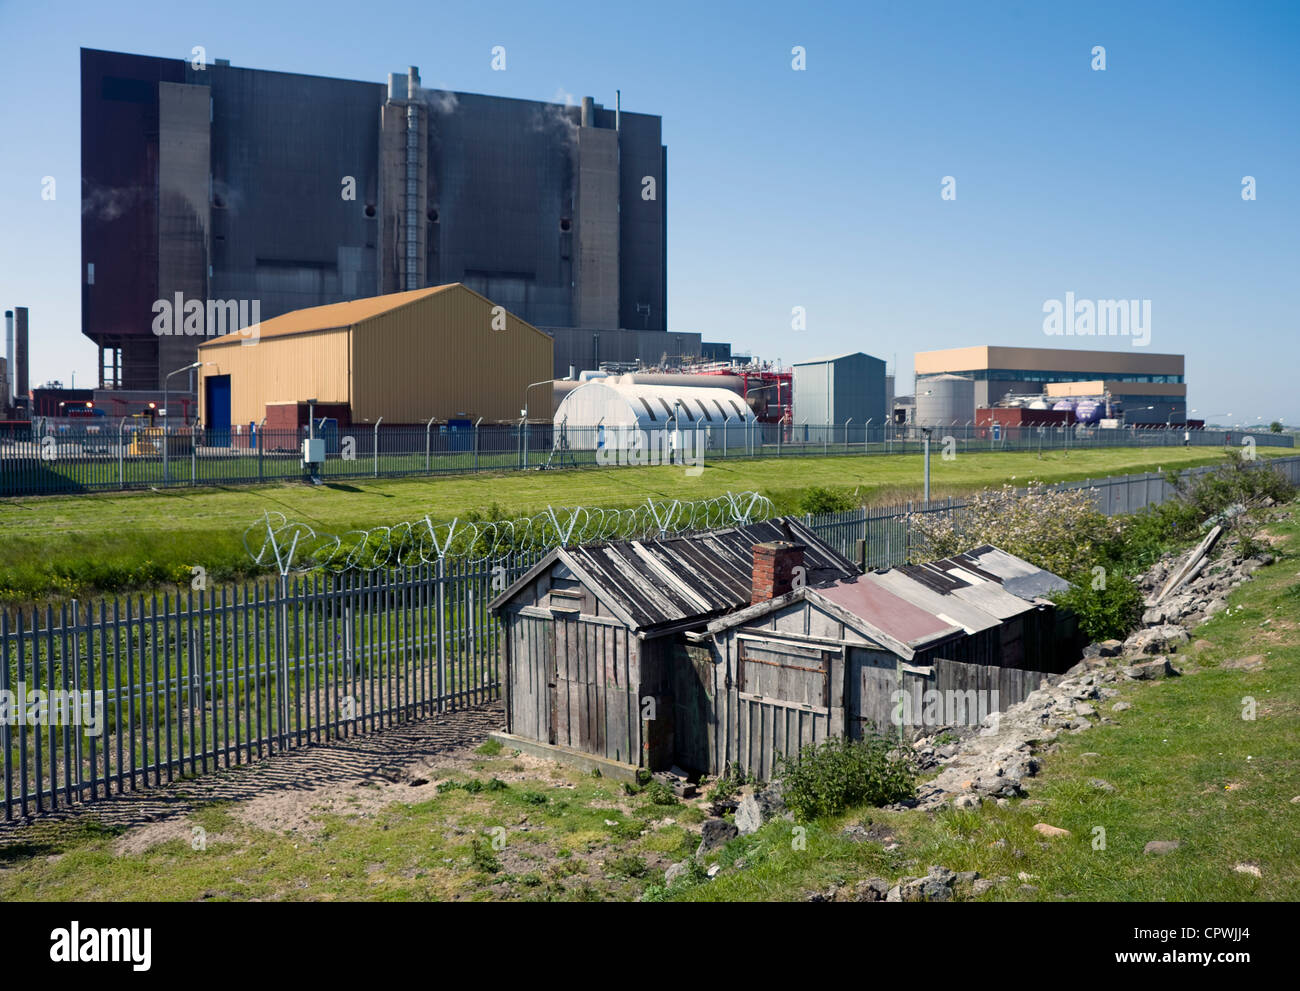 Old fishermans' hut at the Nuclear power station, Hartlepool. - Stock Image